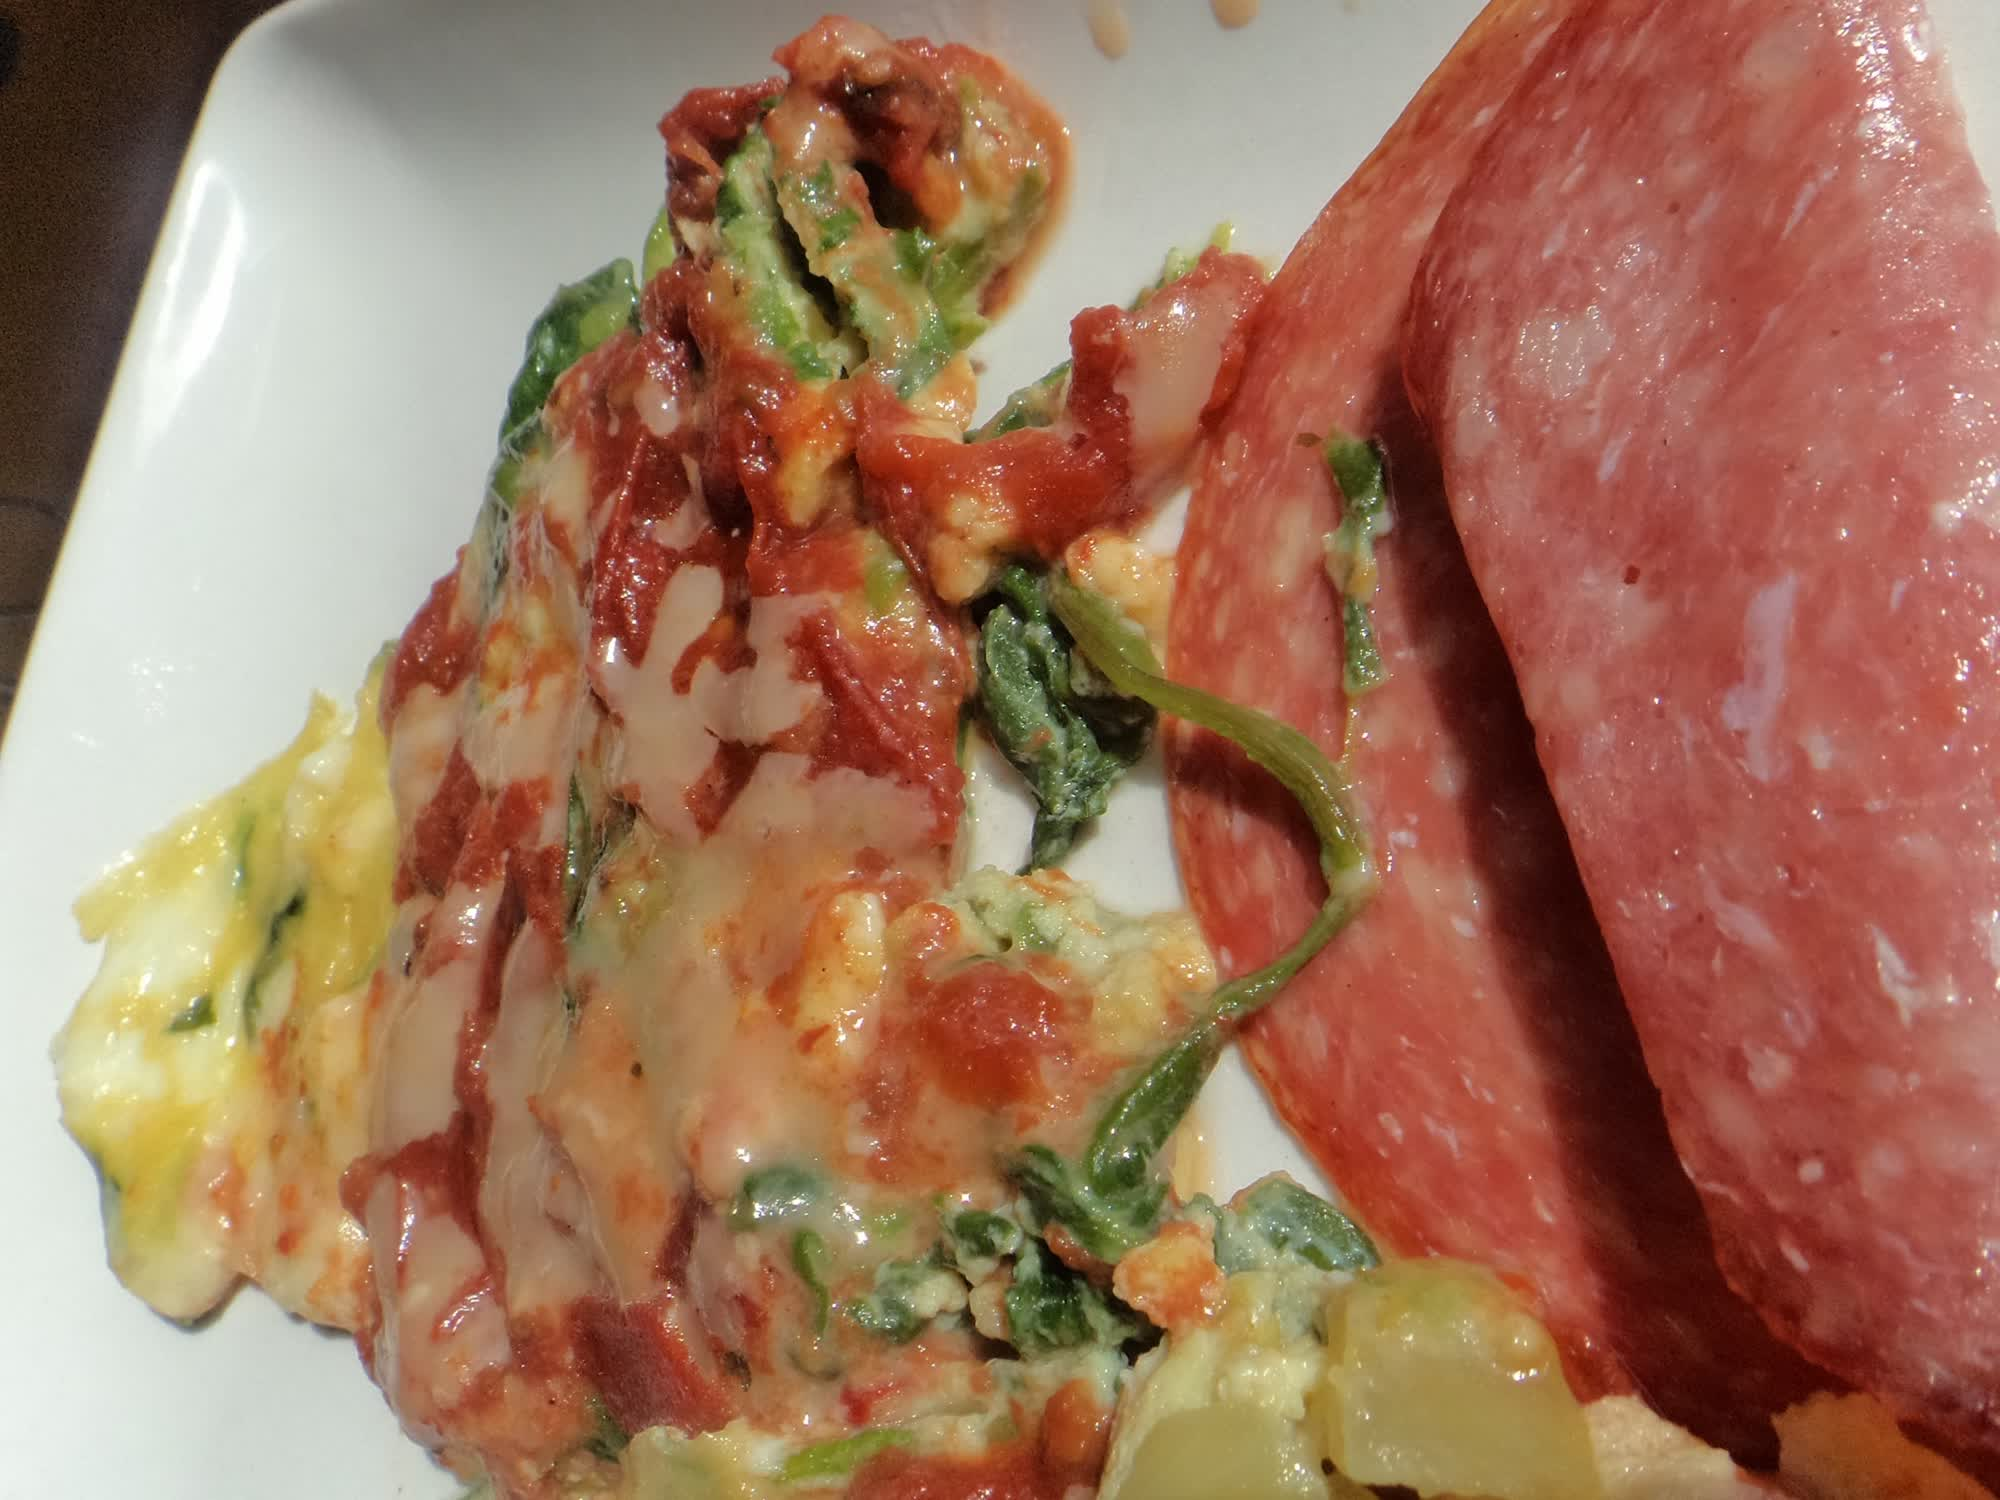 Tomato and cheese covered asparagus with salami.